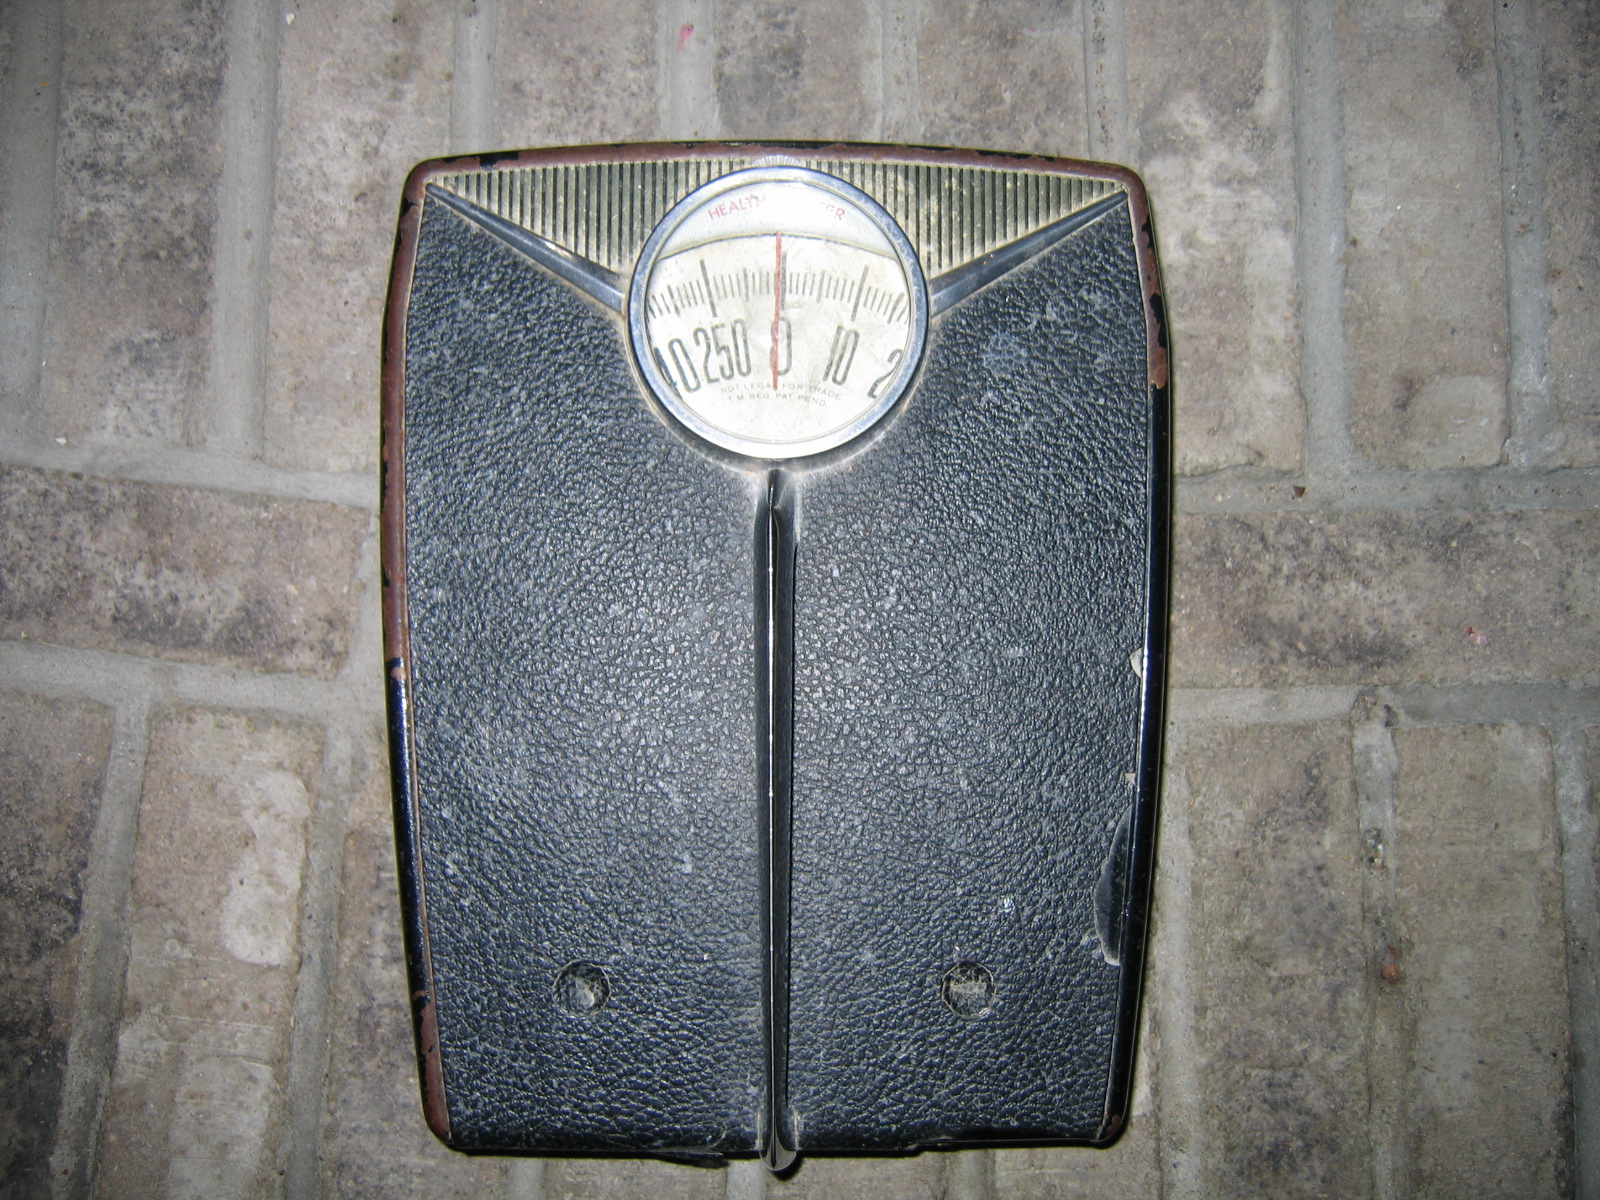 Vintage Health O Meter Bathroom Weight Scale Item #157 For ...